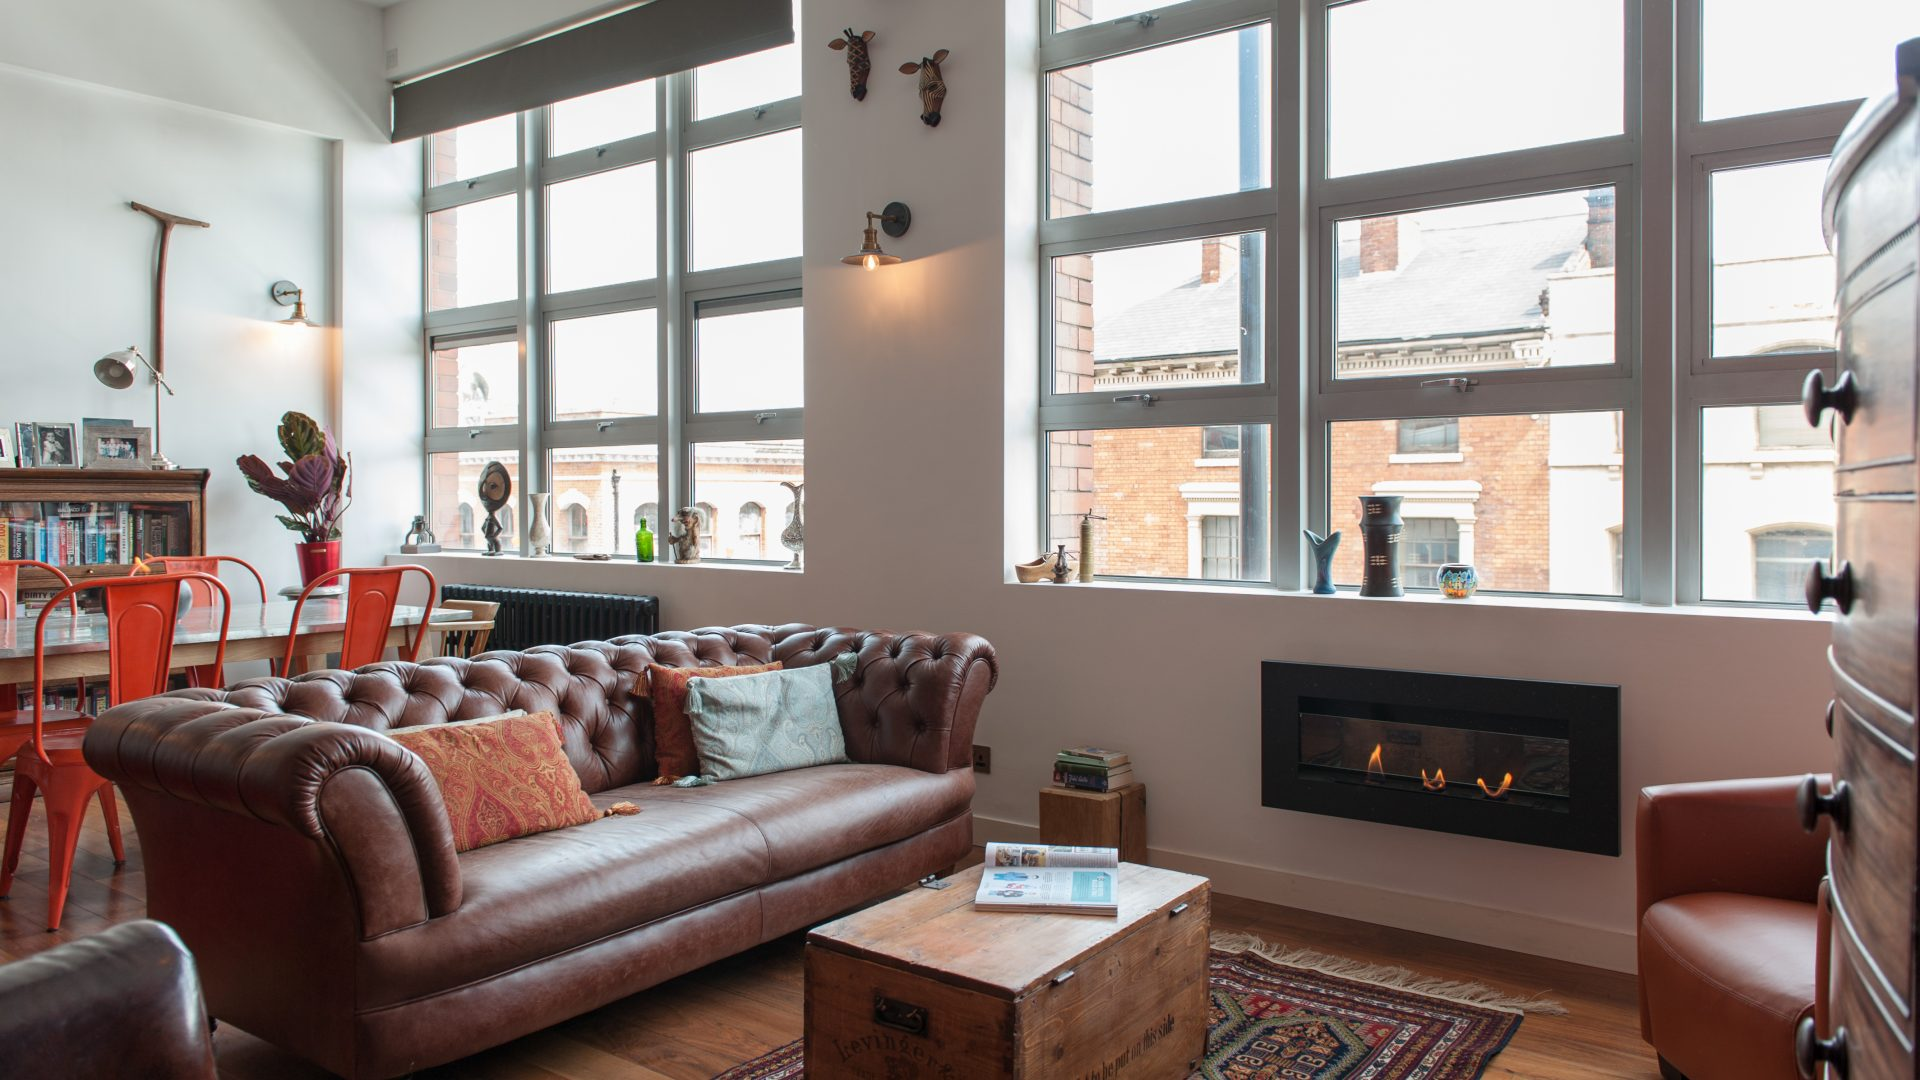 No. 1 New Hampton Lofts, Jewellery Quarter for sale with Mr and Mrs Clarke estate agent